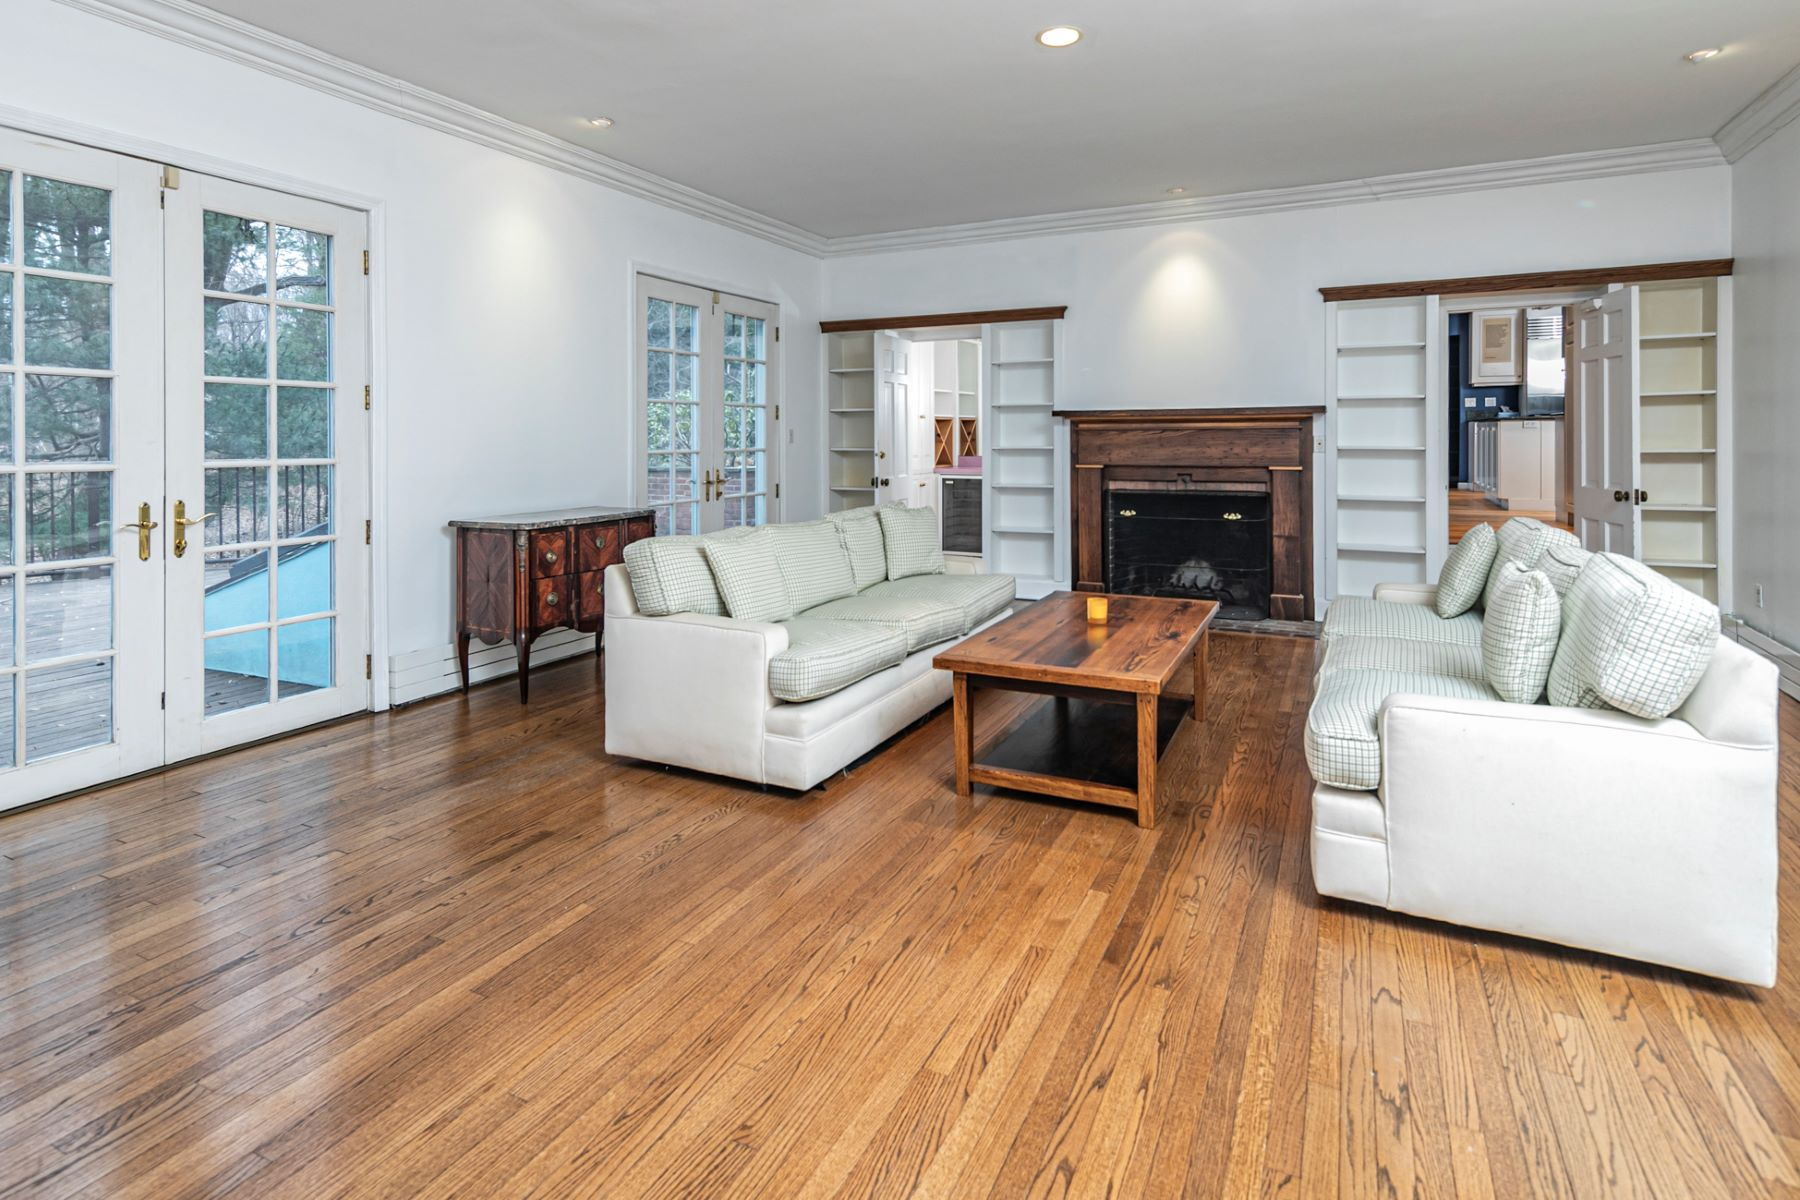 Additional photo for property listing at Gracious and Spacious Western Section Gem 213 Constitution Drive, Princeton, Nueva Jersey 08540 Estados Unidos